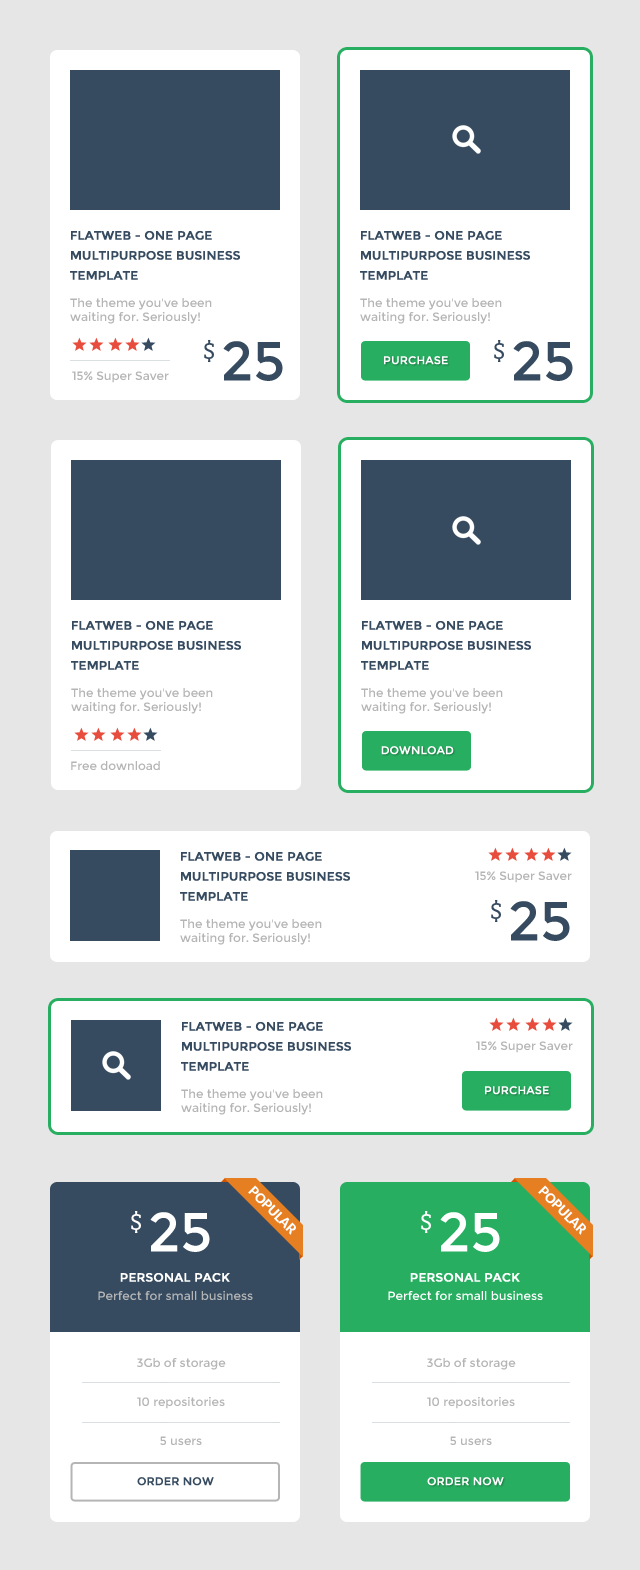 Flat Promo Blocks UI PSD Set Web Resources, Web Elements, Web Design Elements, Web, User Interface, unique, ui set, ui kit, UI elements, UI, Table, Stylish, Resources, Quality, Promotion, promo, Product, Price Tag, price table, price list, Price, pack, original, new, Modern, Listing, Items, Interface, GUI Set, GUI kit, GUI, Graphical User Interface, Fresh, flat ui, flat psd, Flat Design, Flat, Elements, detailed, Design Resources, Design Elements, Design, Creative, Clean, blocks,